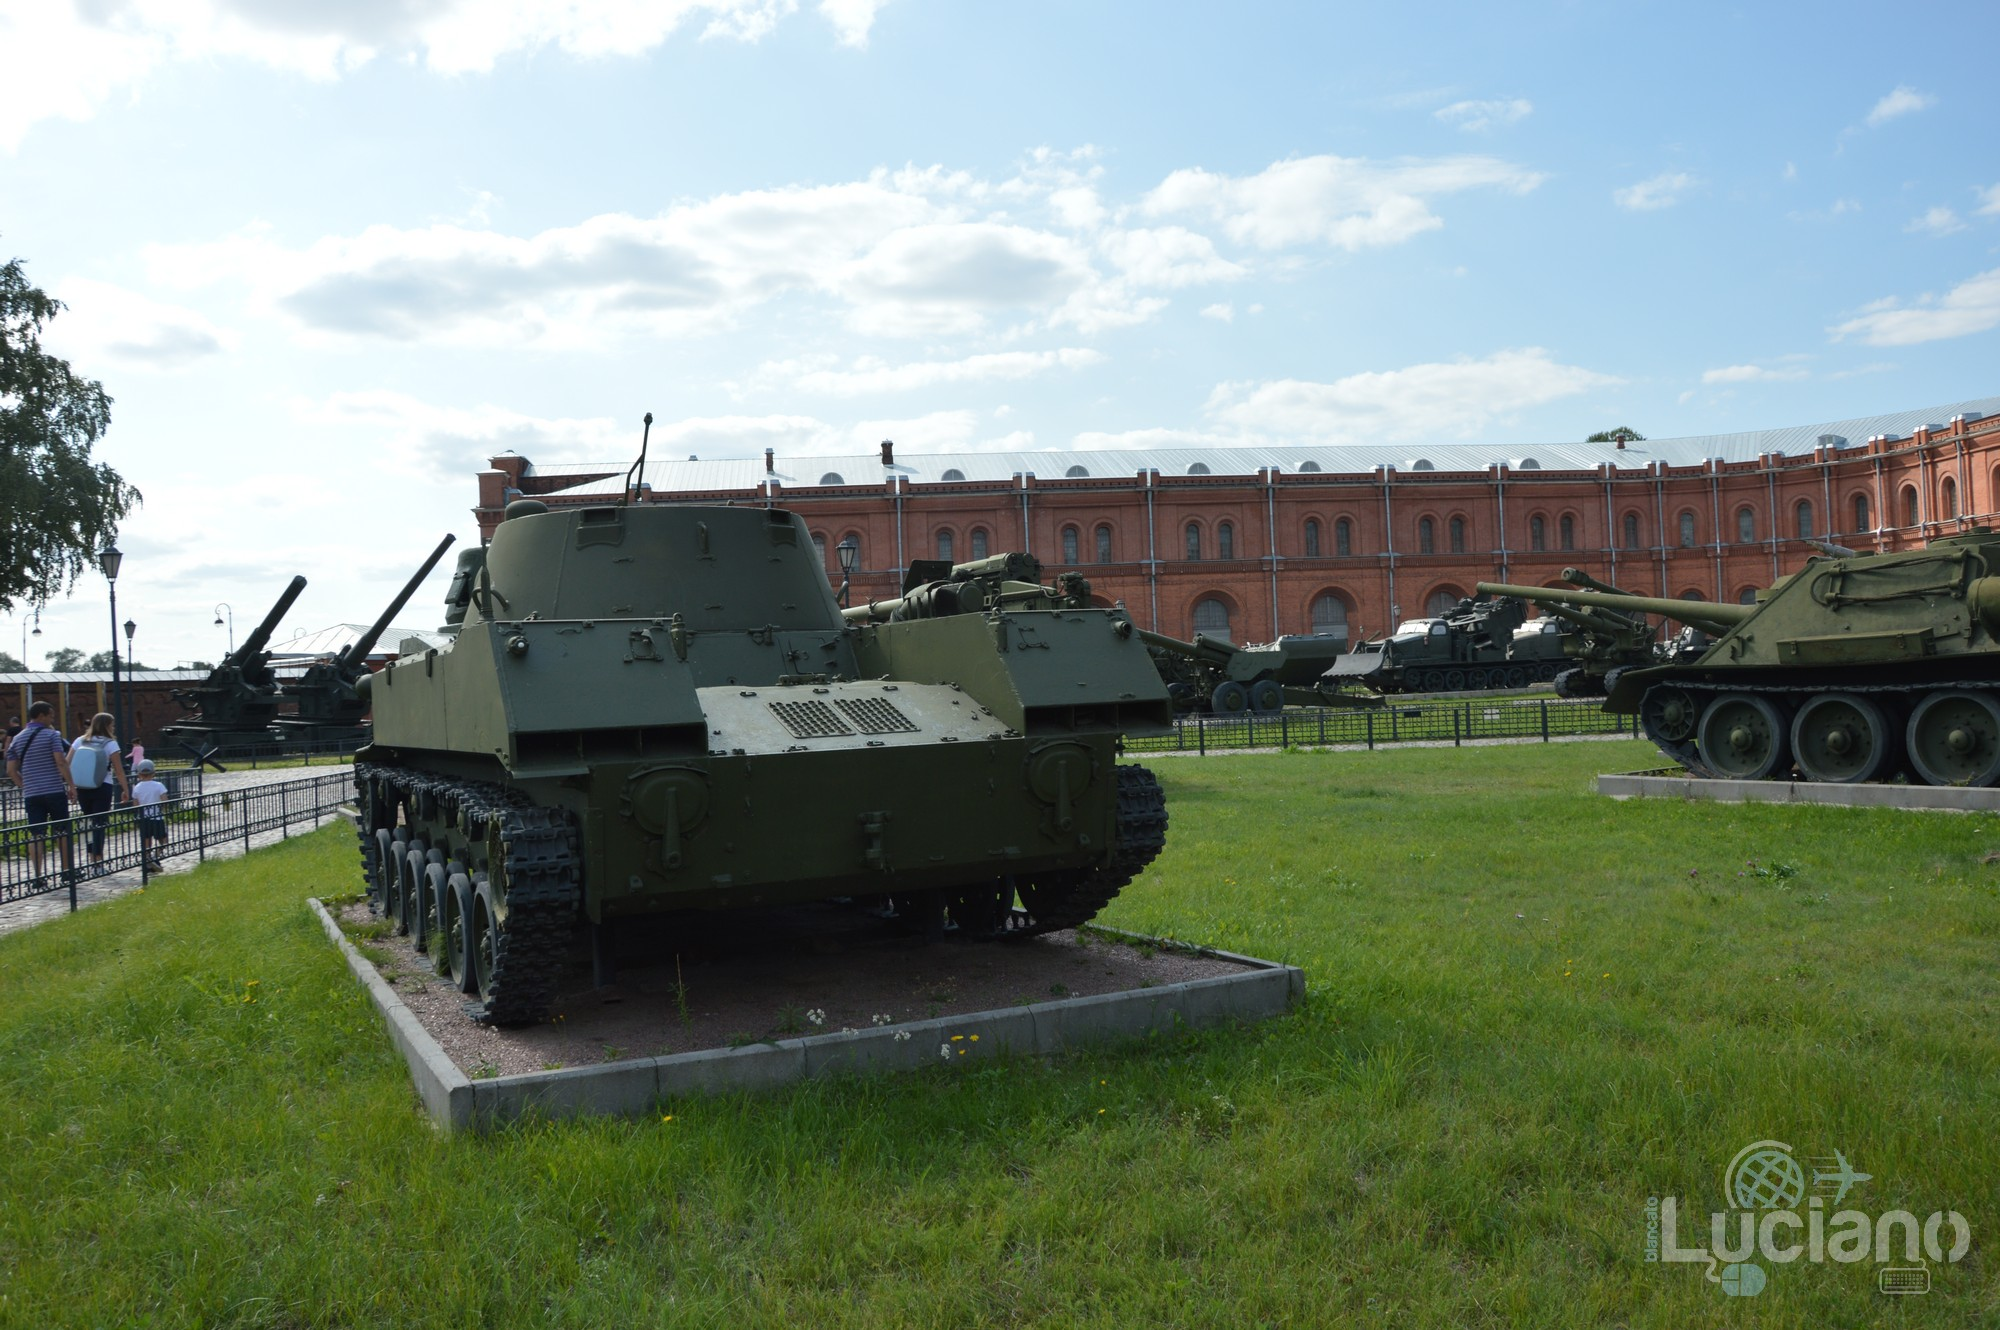 Military-Historical-Museum-of-Artillery-Engineer-and-Signal-Corps-St-Petersburg-Russia-Luciano-Blancato- (57)